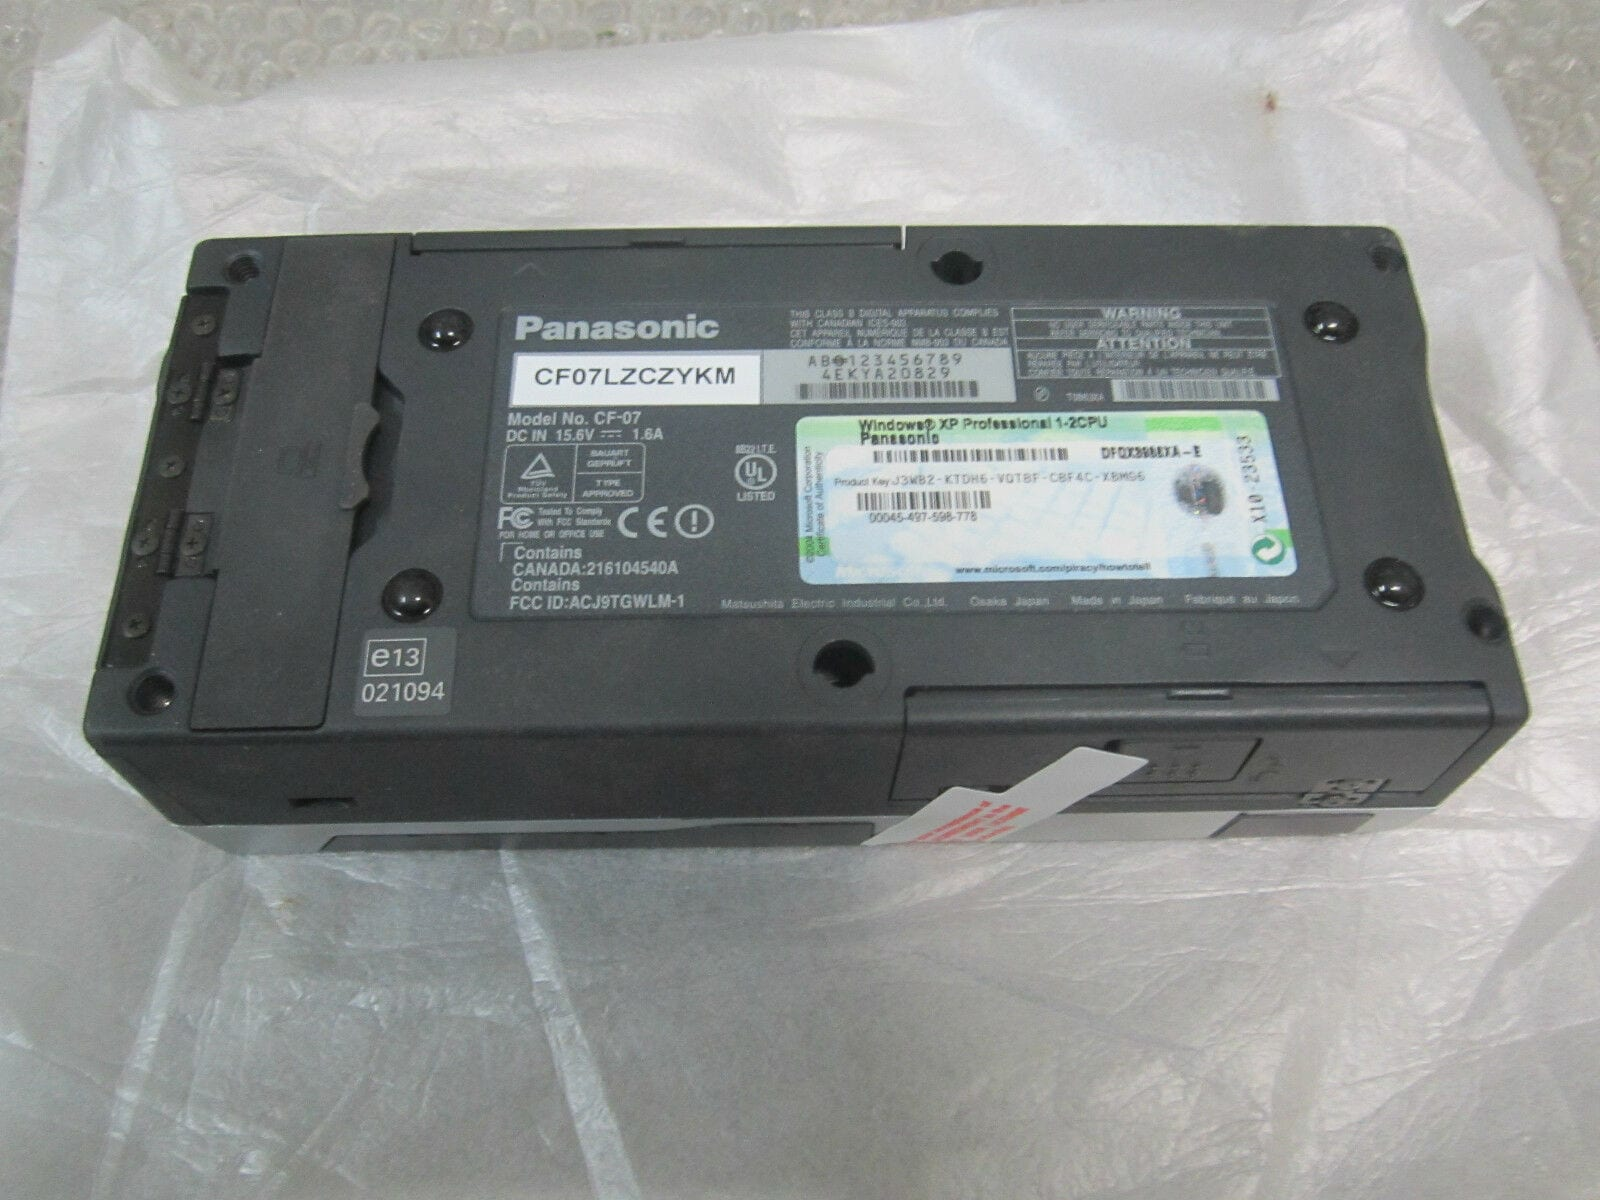 Panasonic CF-07 Touch book Computer Module Windows XP DC In 15.6V *Never Used*